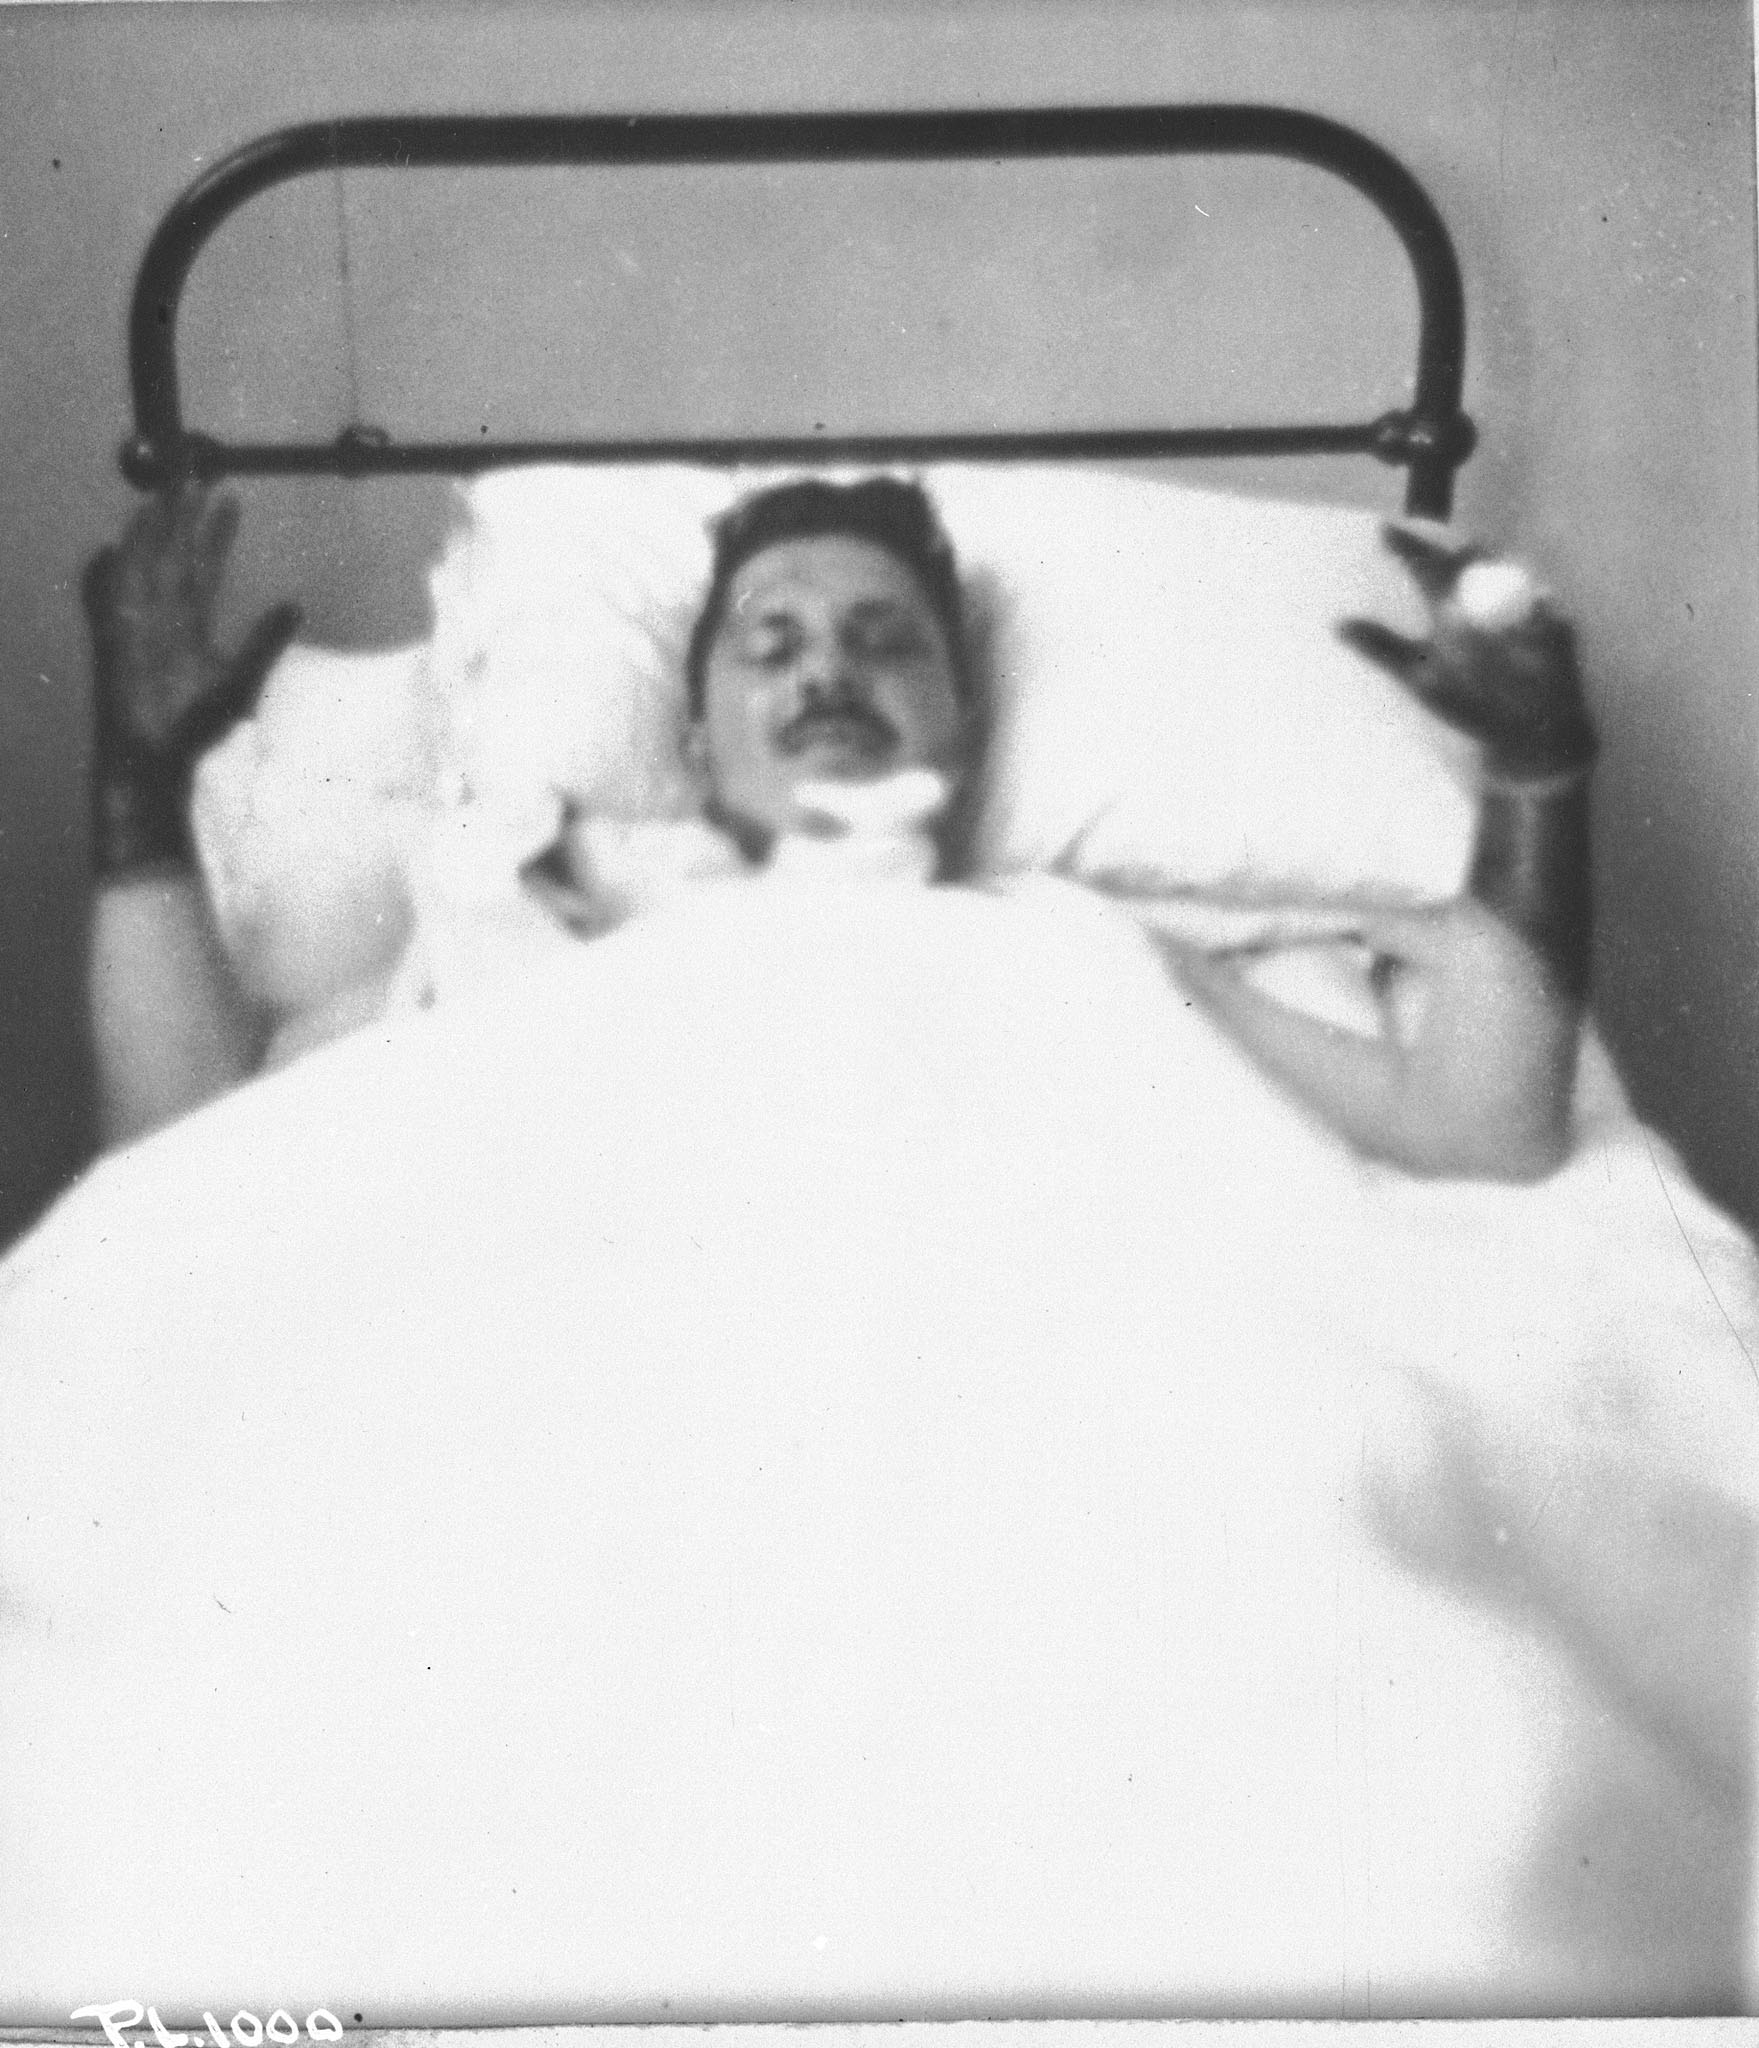 In late 1940 in a hospital in England, Flight Lieutenant Jean-Paul Desloges recuperates from burns he received on August 31, 1940, as he struggled to exit his burning aircraft after it was hit by a cannon shell during the interception of a large body of German bombers escorted by fighters over the south coast of England. PHOTO: DND